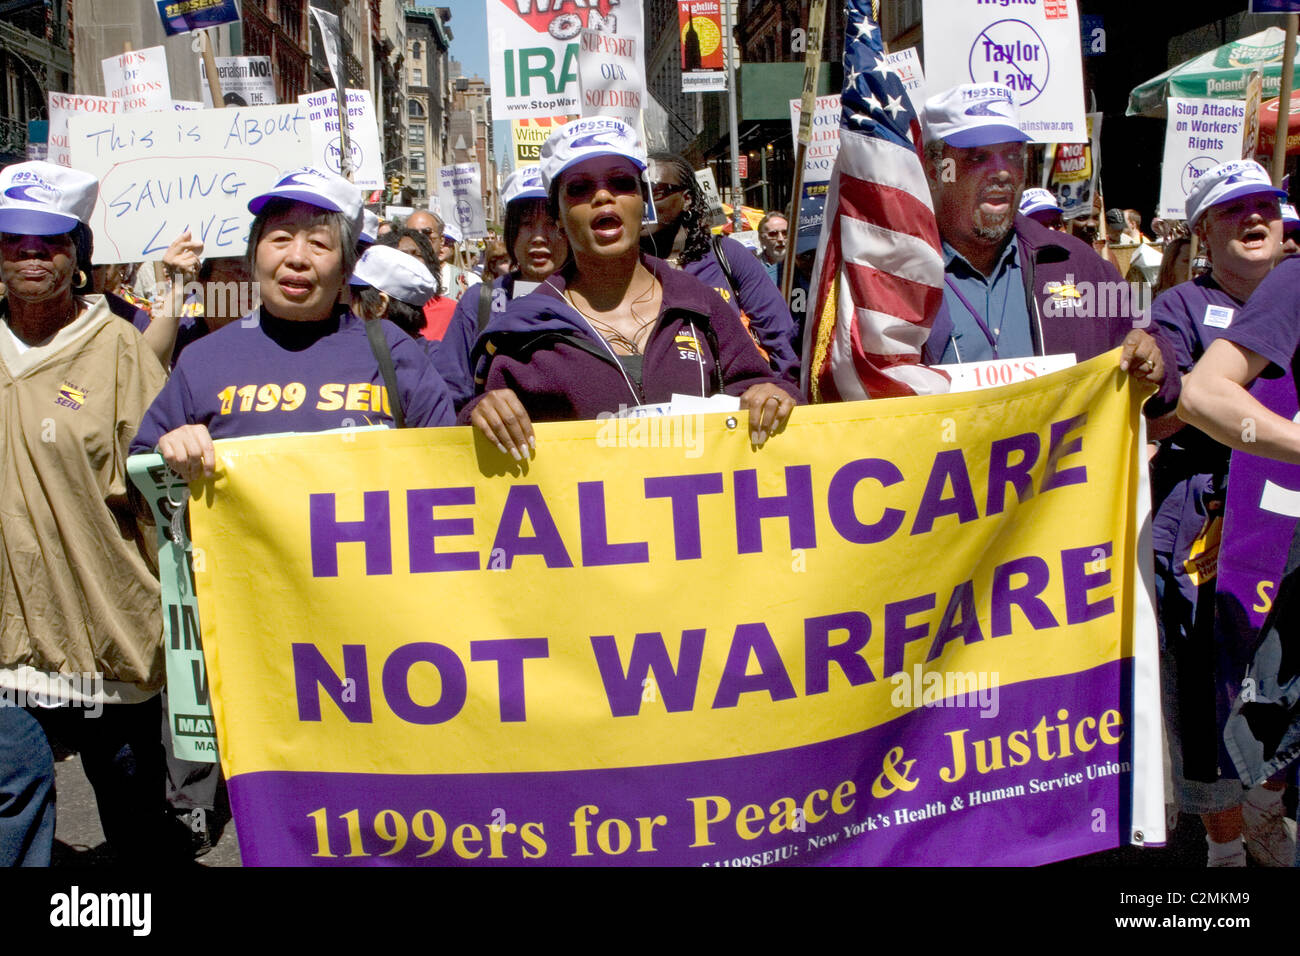 2006, Broadway, New York City: Anti-war and peace march expressing a general dissatisfaction with the Bush administration - Stock Image